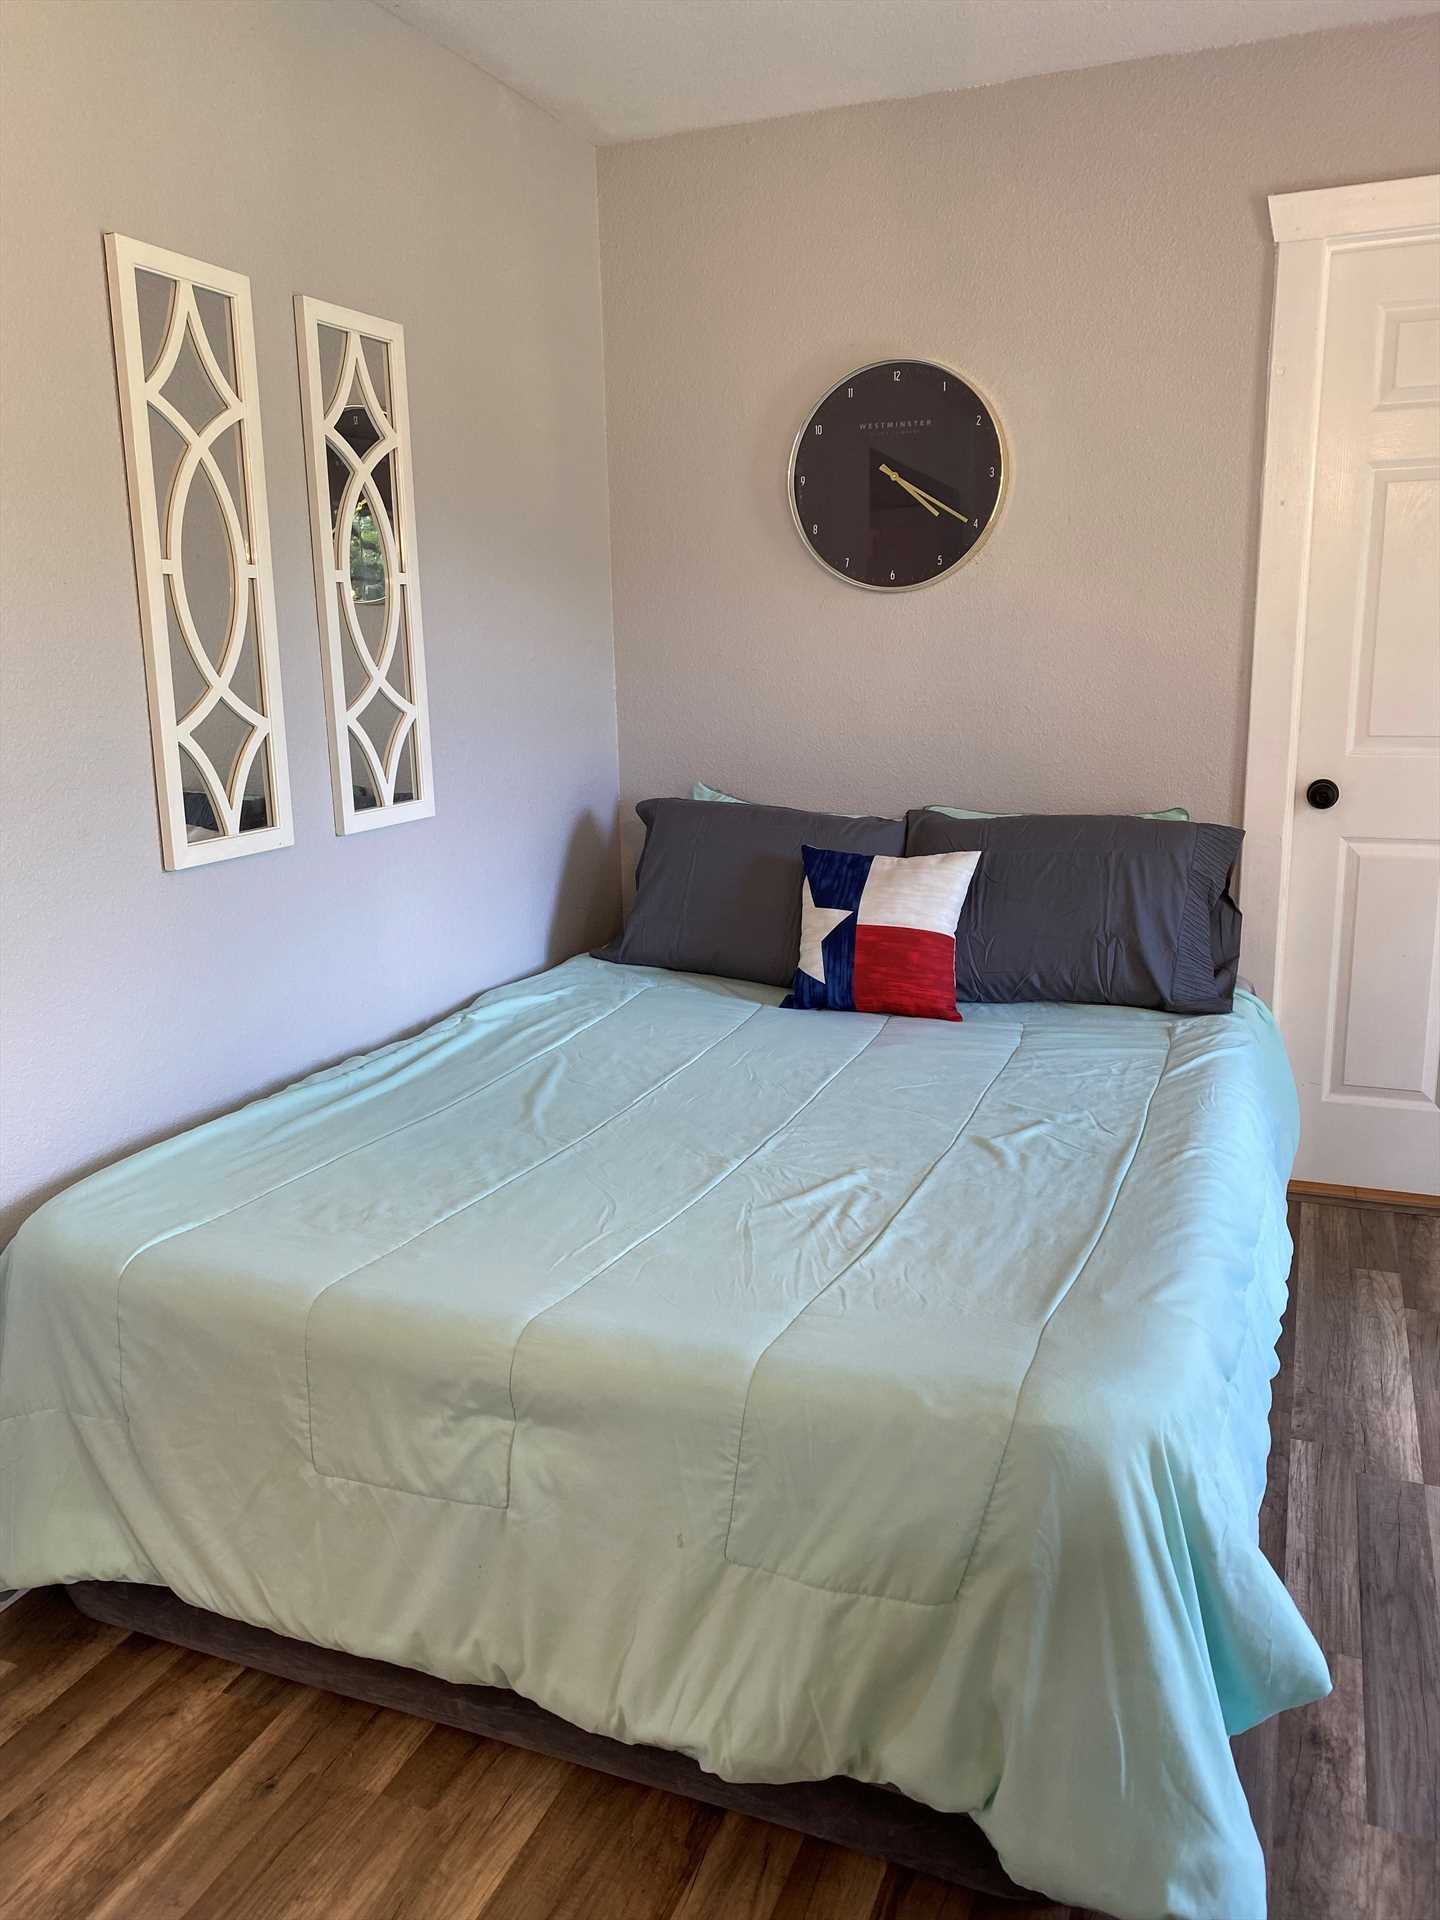 All the sleeping arrangements at the Hill Country Lake Retreat include soft and clean liens for a fantastic night's rest. That includes three beds, a roomy sleeper sofa, and an extra large air mattress.